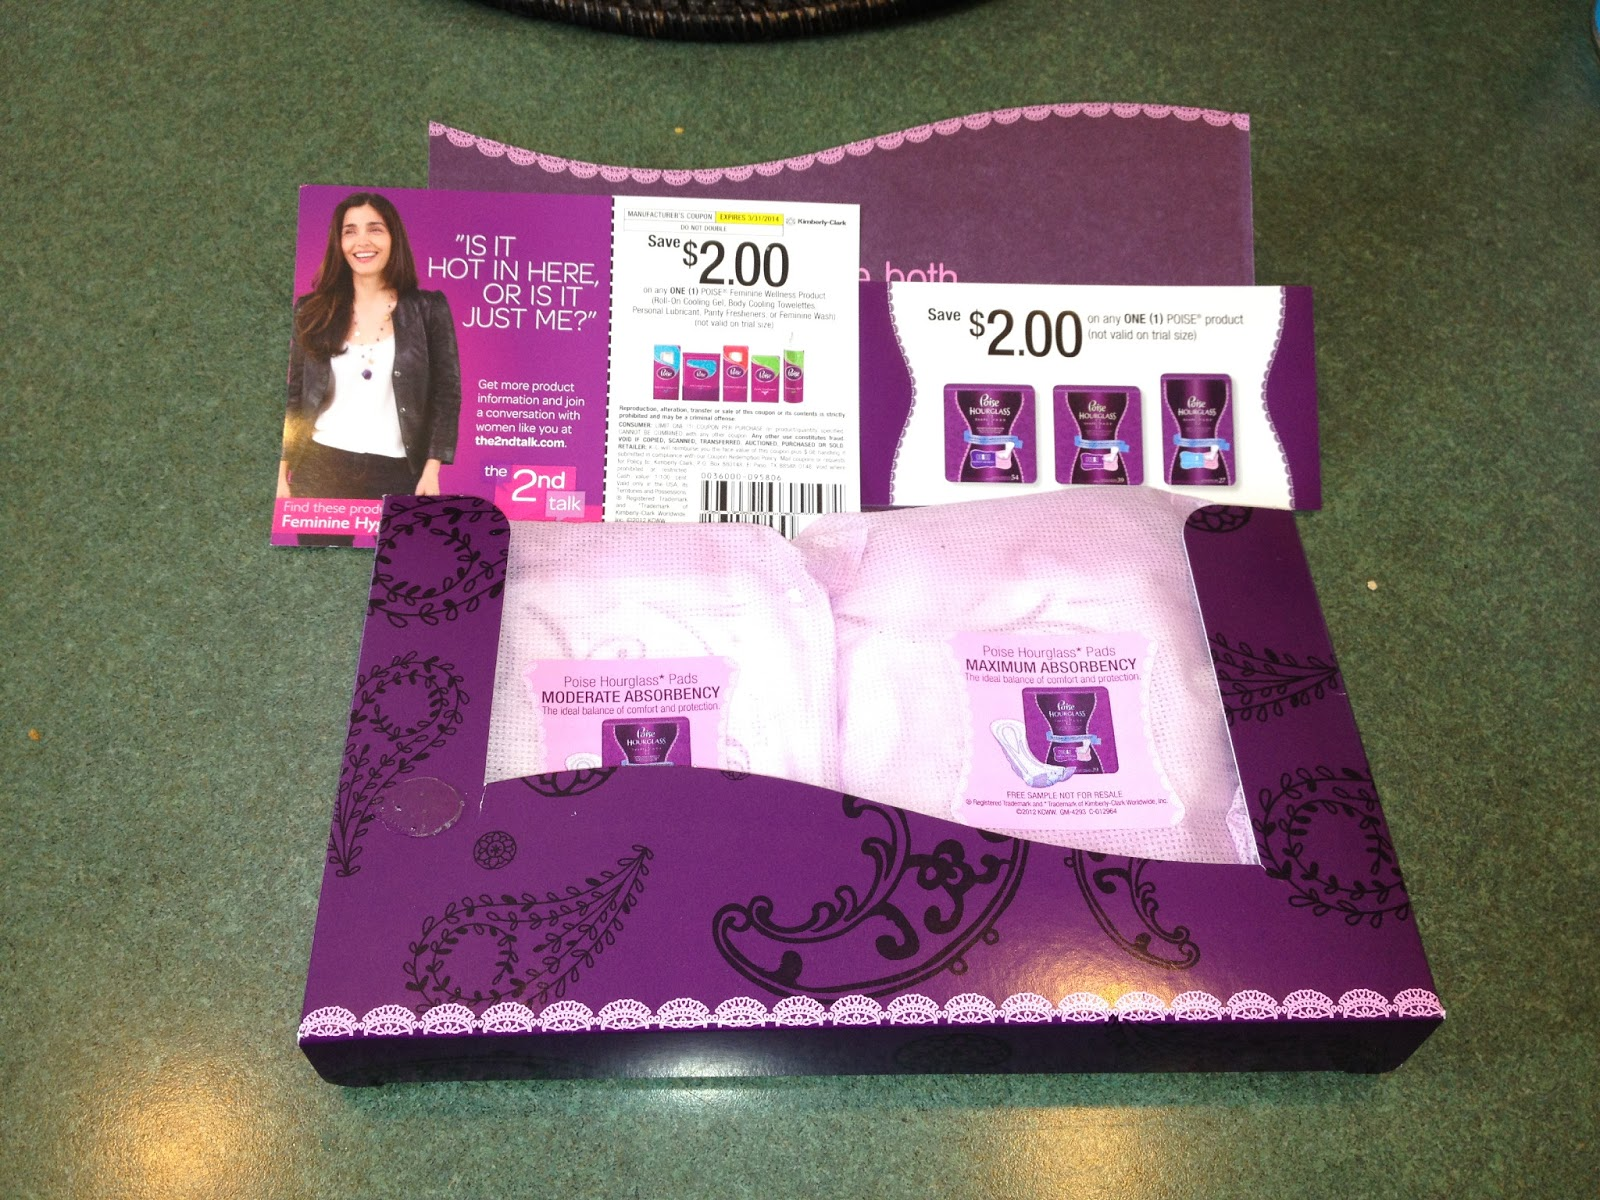 Request Your FREE Poise Feminine Product Samples with Coupons + ...